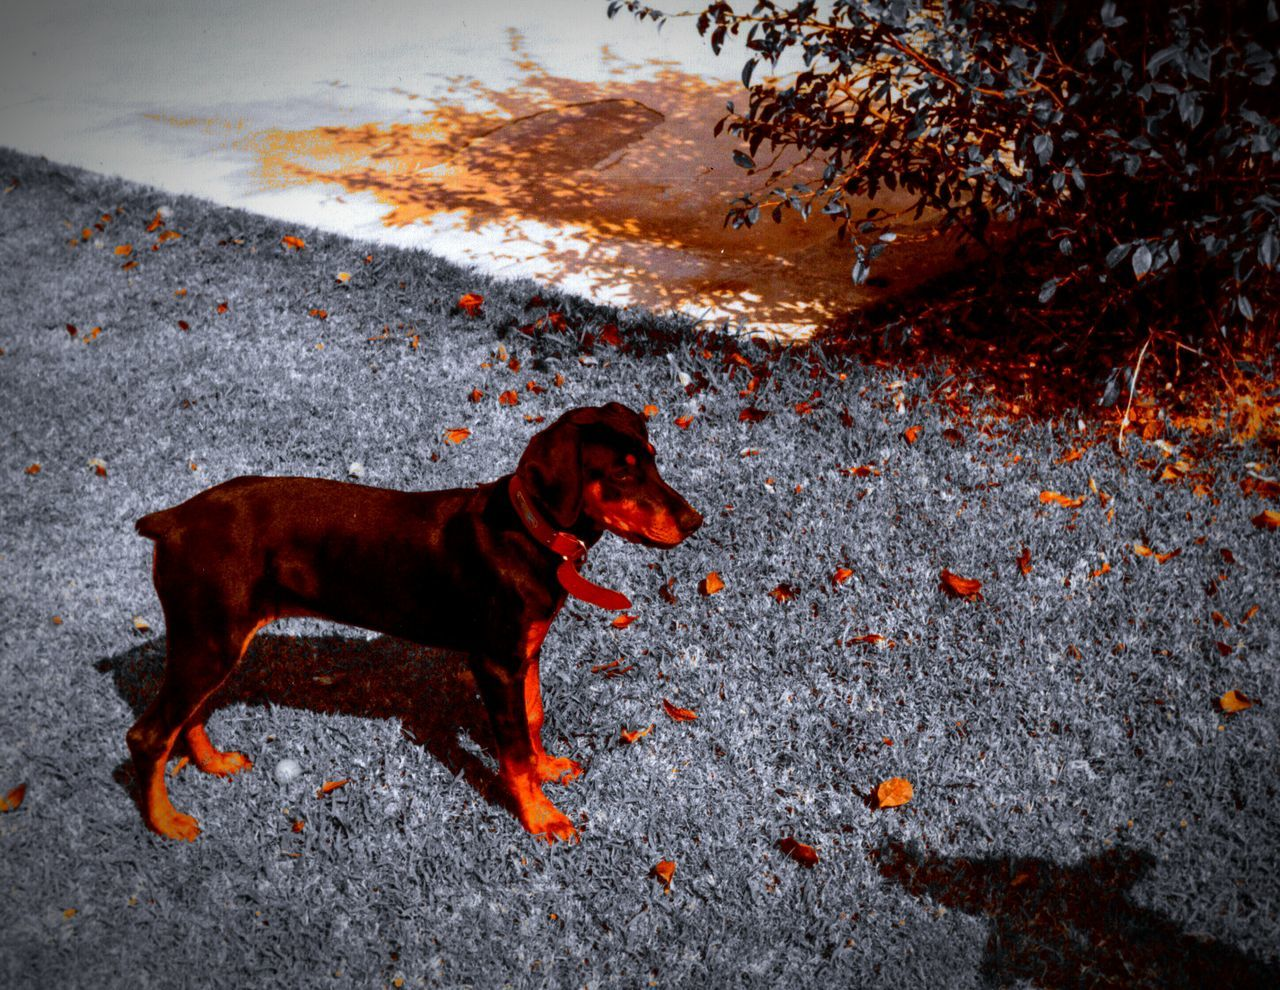 Dog Life In Motion No People Doberman  Pets Corner Creative Light And Shadow Puppies Summer Dogs Carmine Service Animals Adventure Buddies Cute Animals Cute Animal Photography Animal Themes Animals